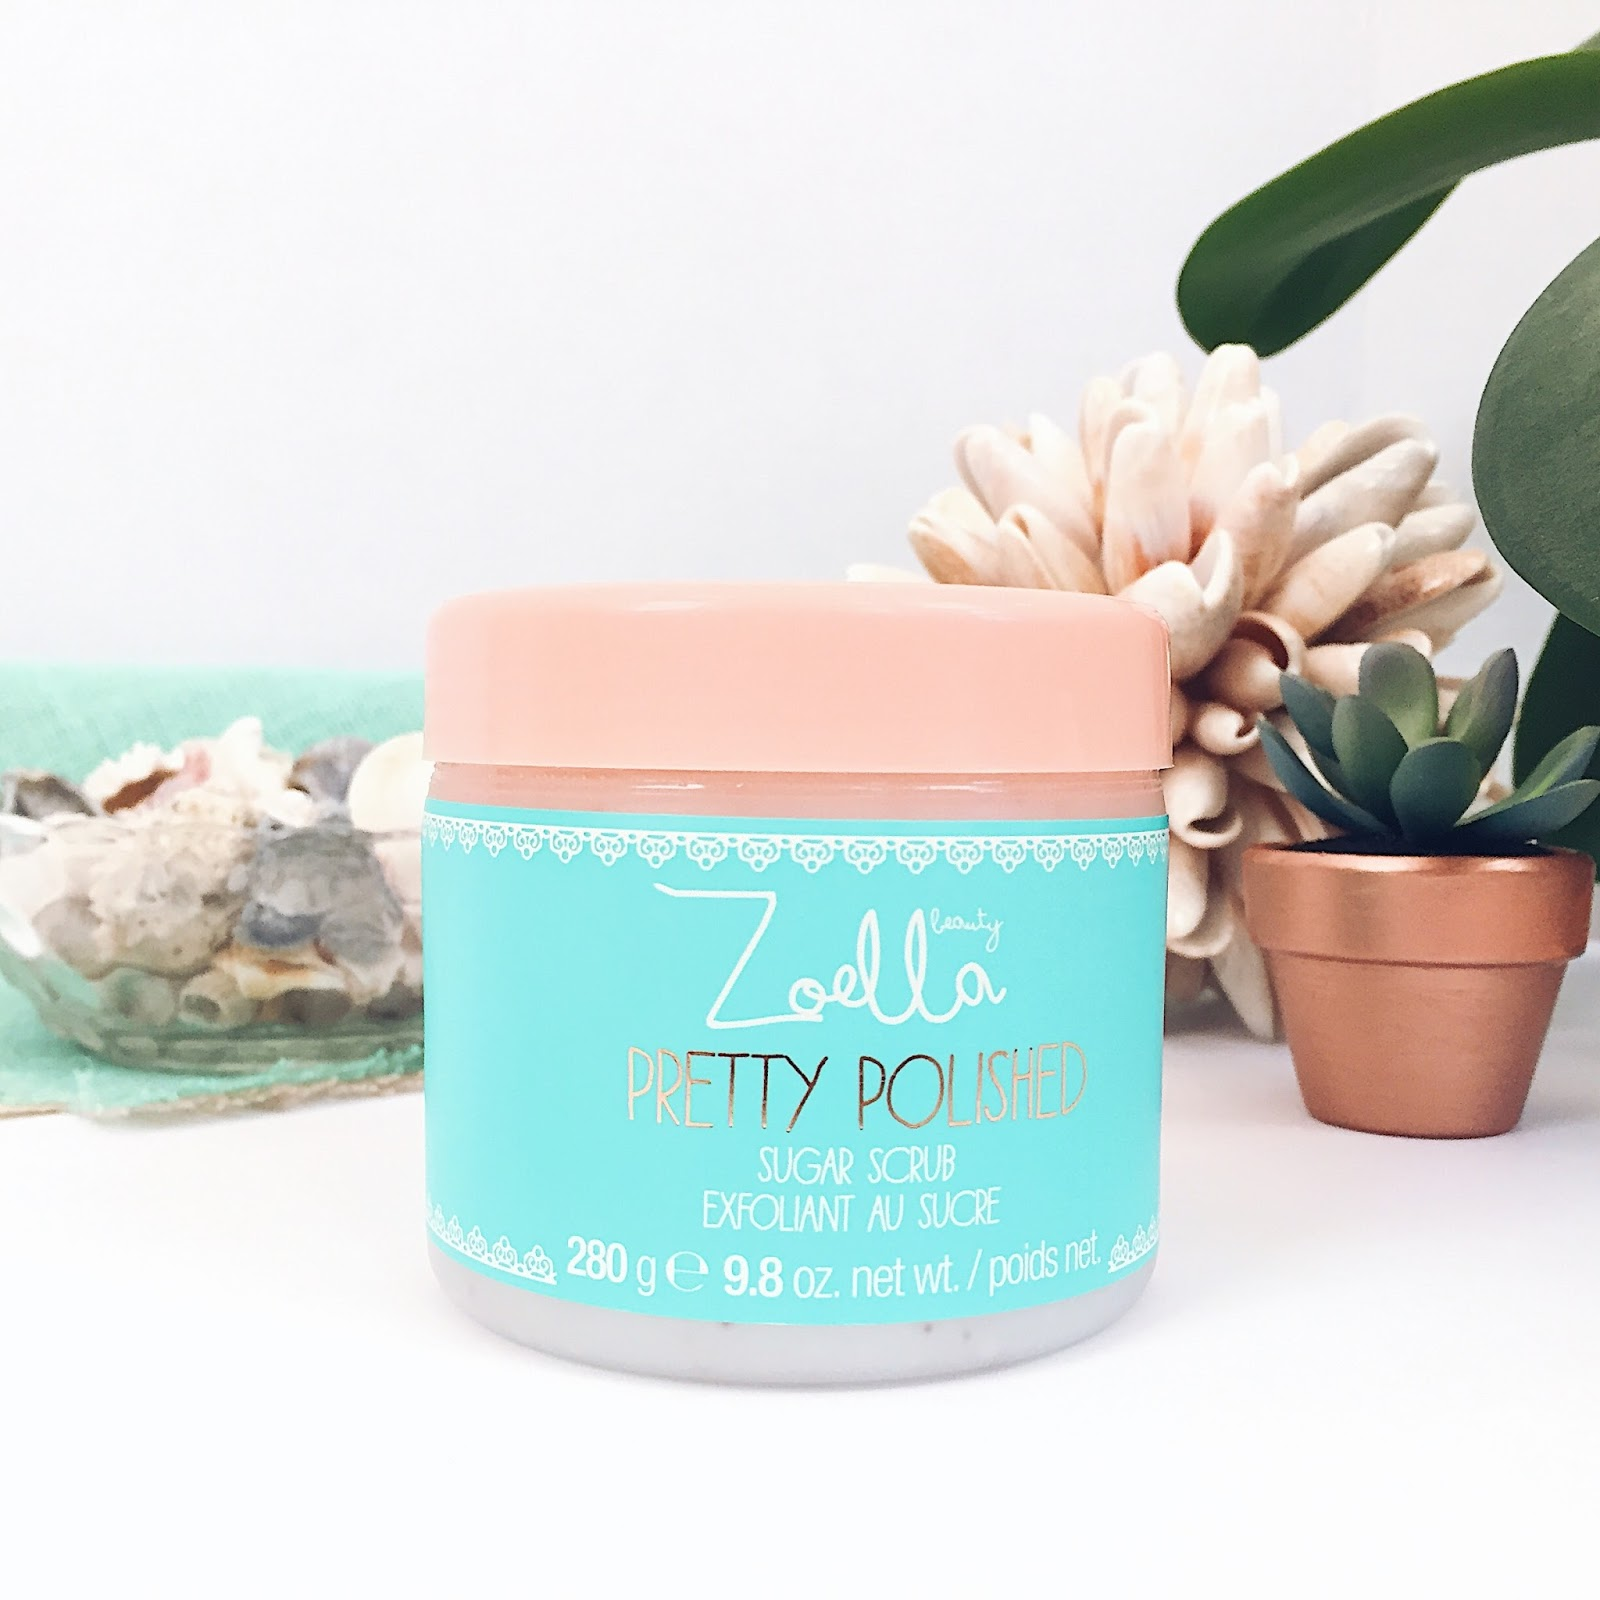 Zoella Pretty Polished Sugar Scrub